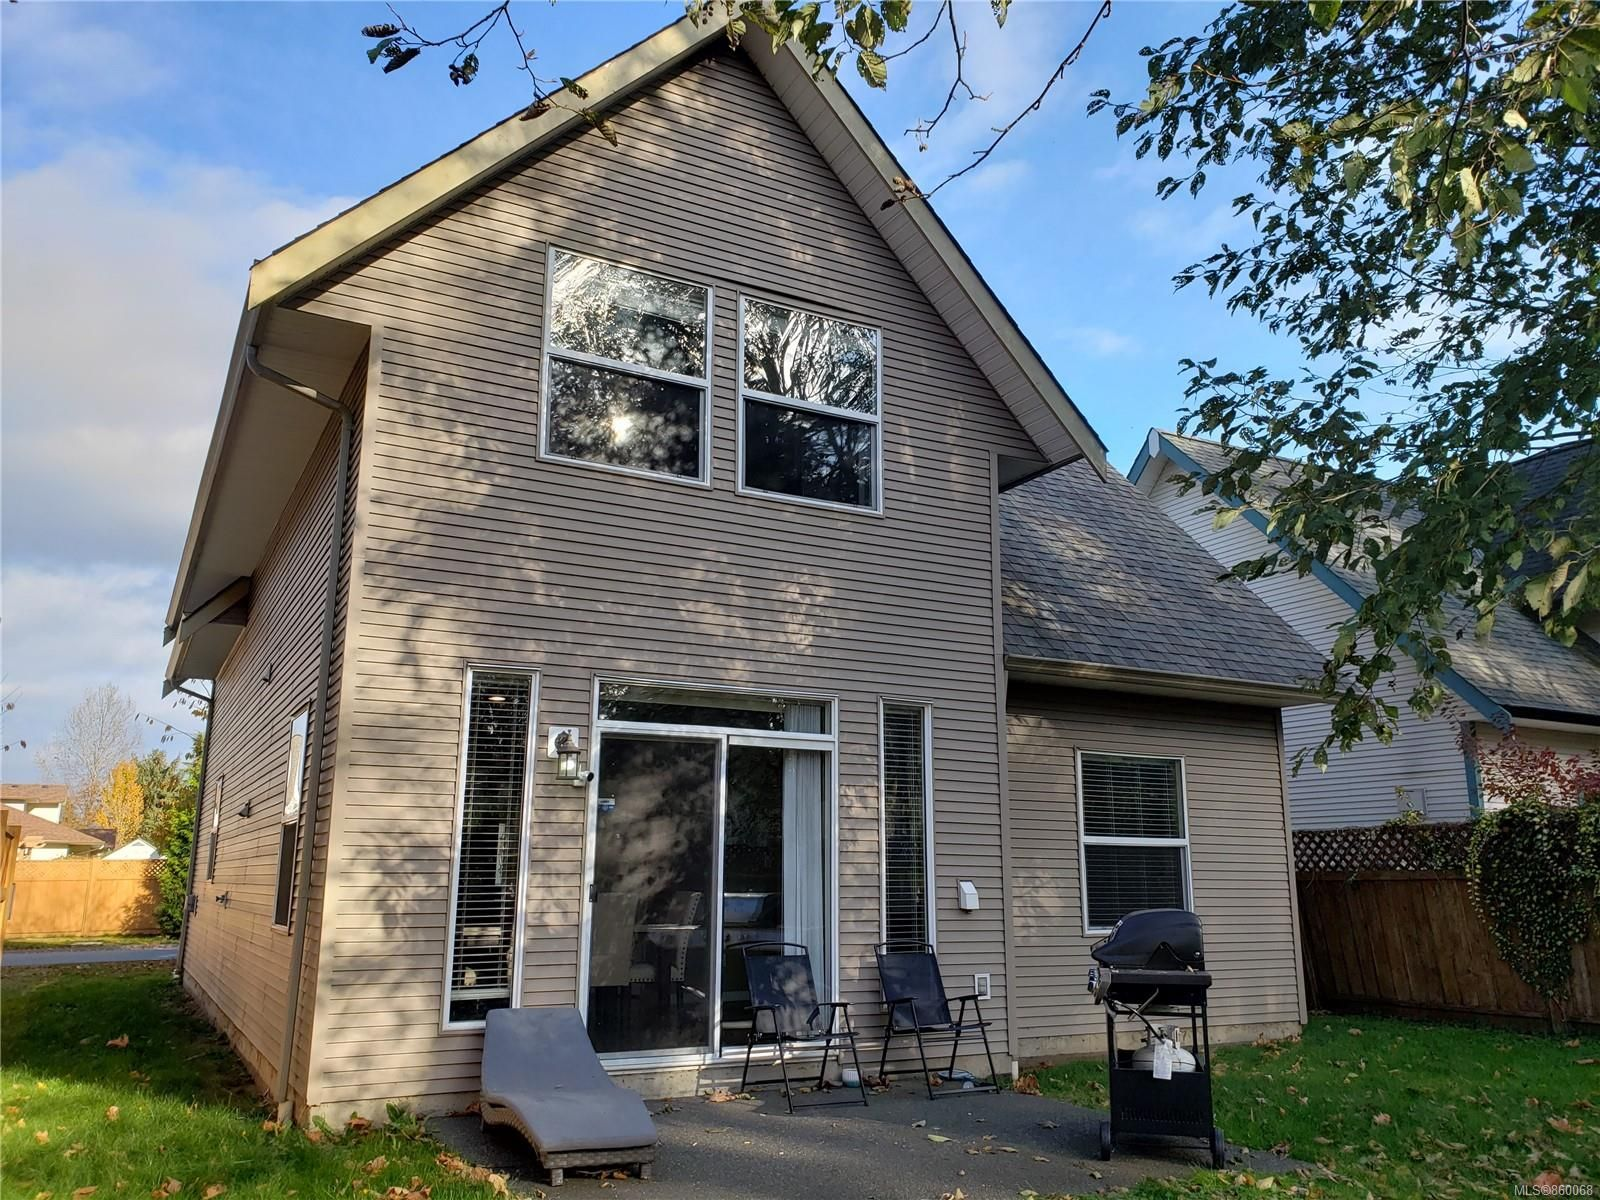 Photo 2: Photos: 105 2787 1st St in Courtenay: CV Courtenay City House for sale (Comox Valley)  : MLS®# 860068